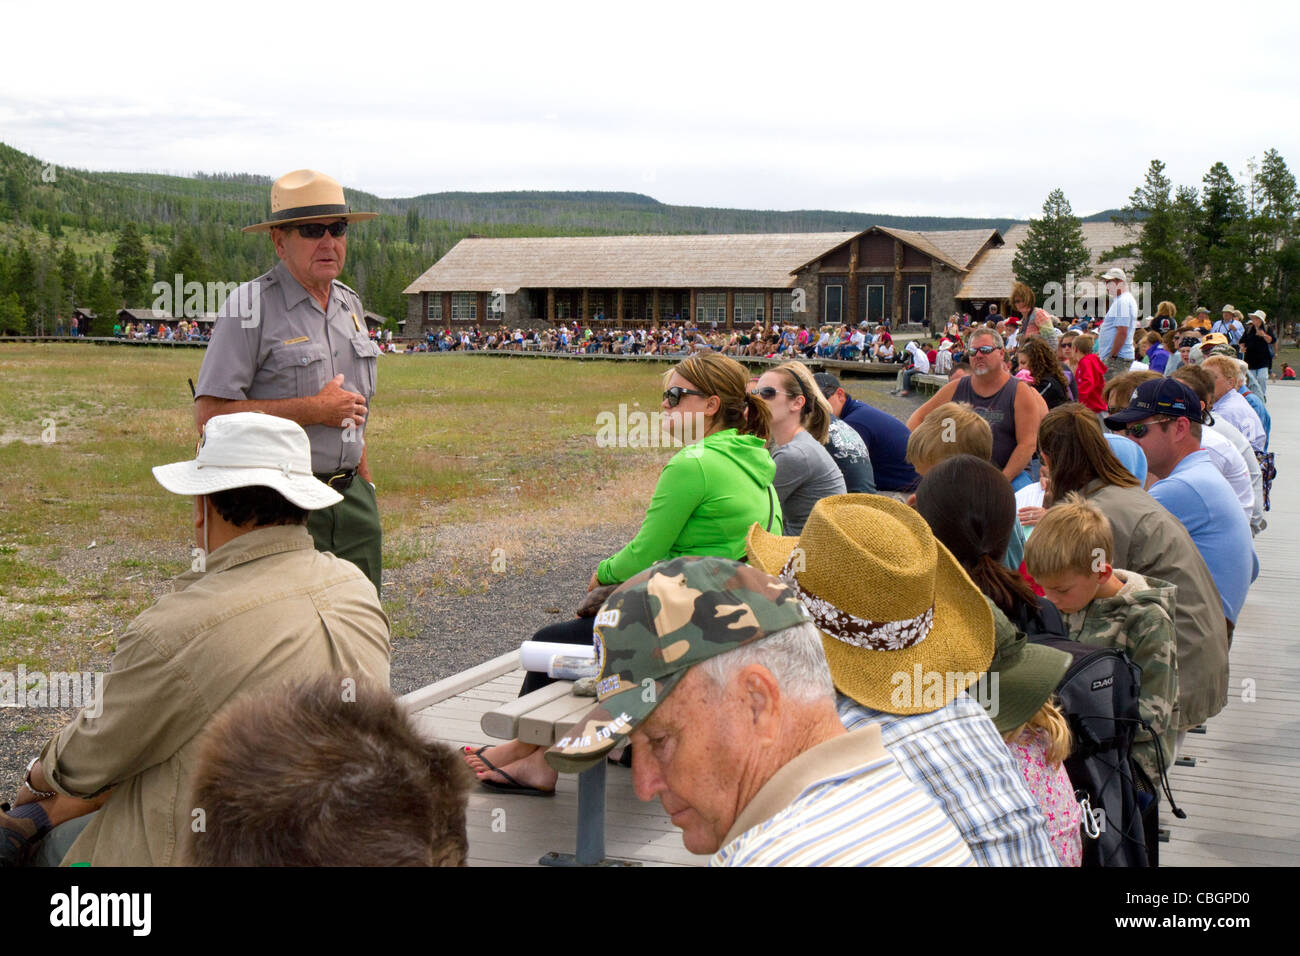 Park ranger giving a tour group information about Old Faithful geyser in Yellowstone National Park, Wyoming, USA. - Stock Image